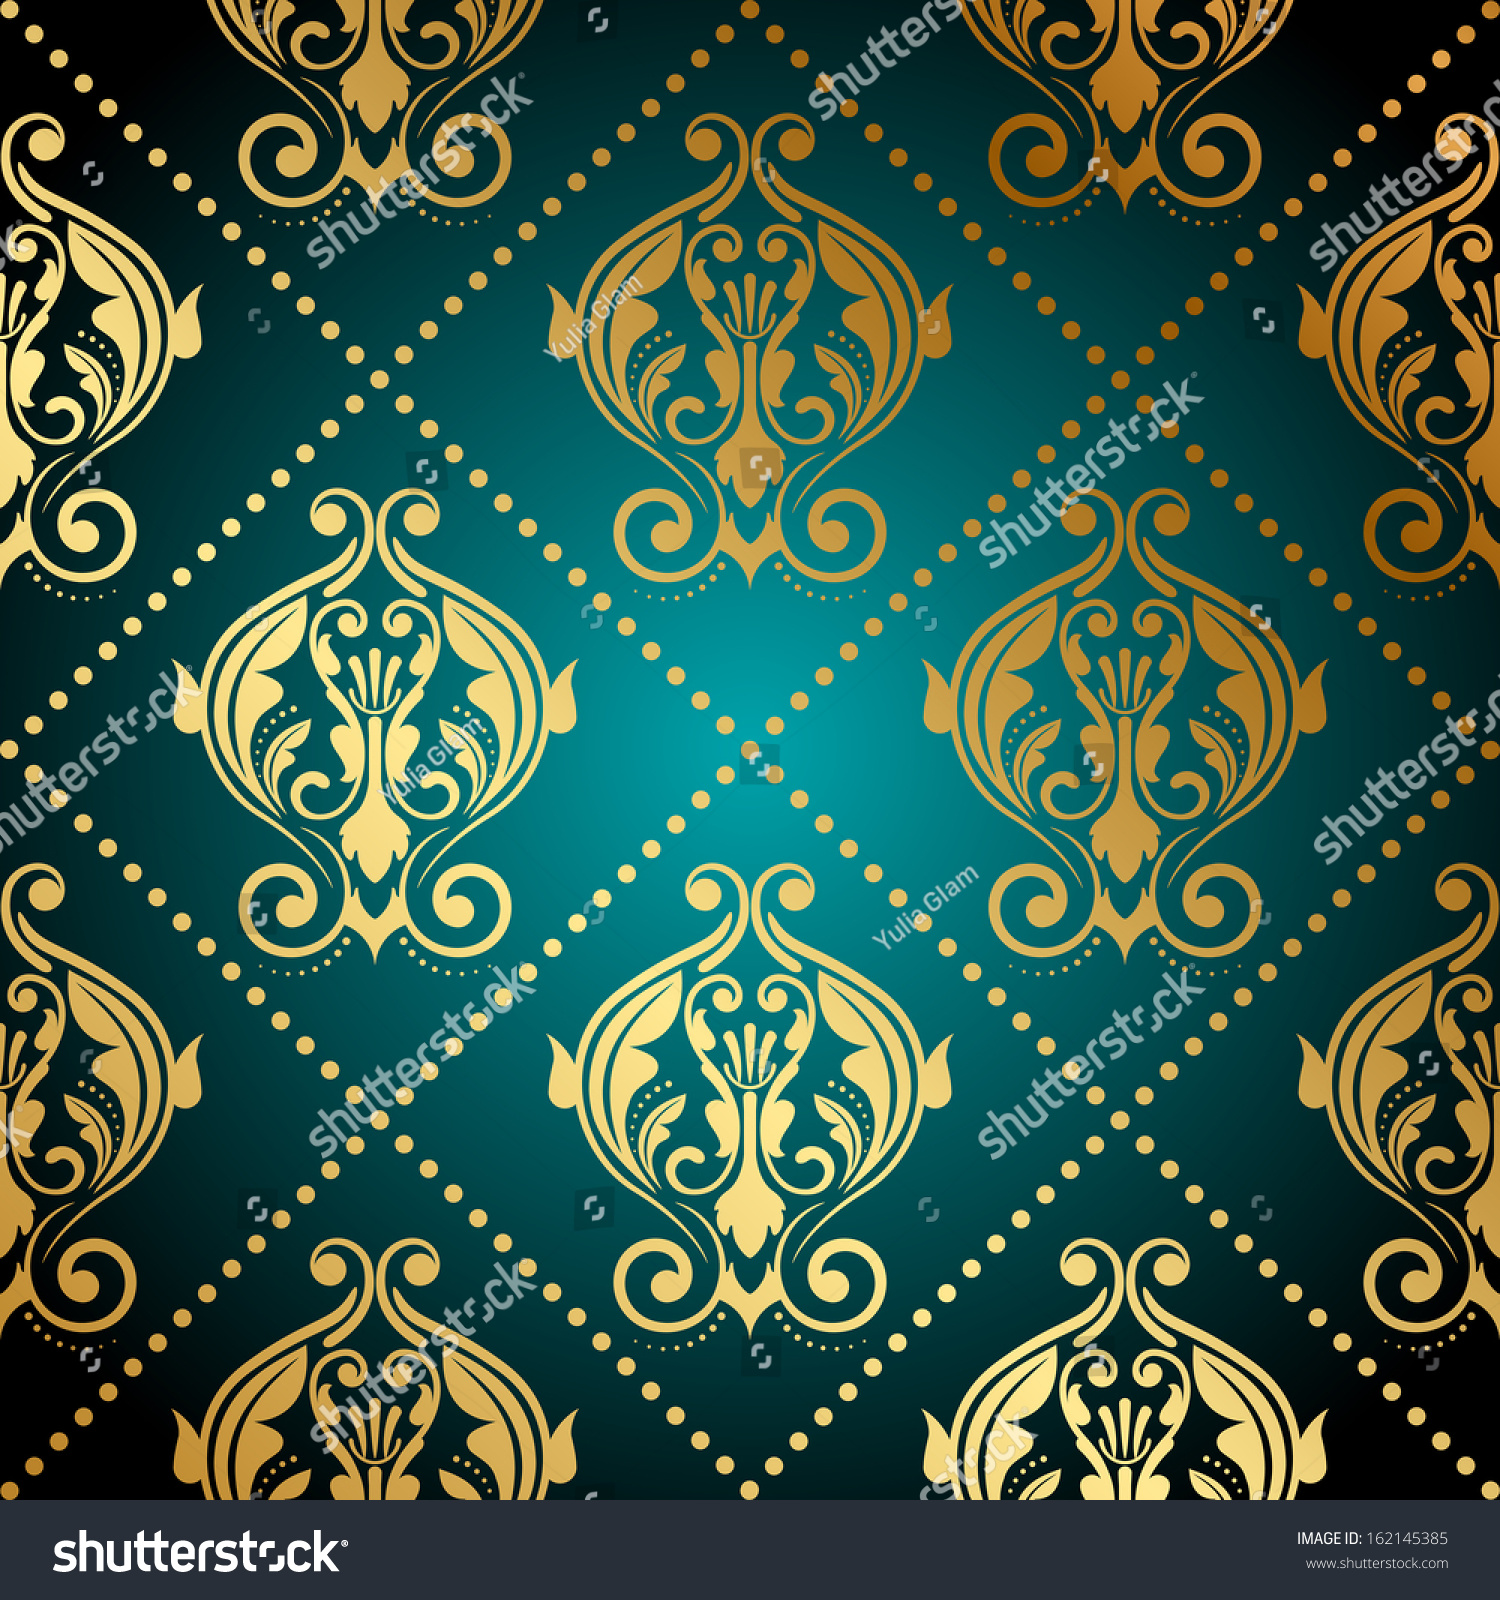 Turquoise Seamless Leaves Wallpaper Royalty Free Cliparts Vectors